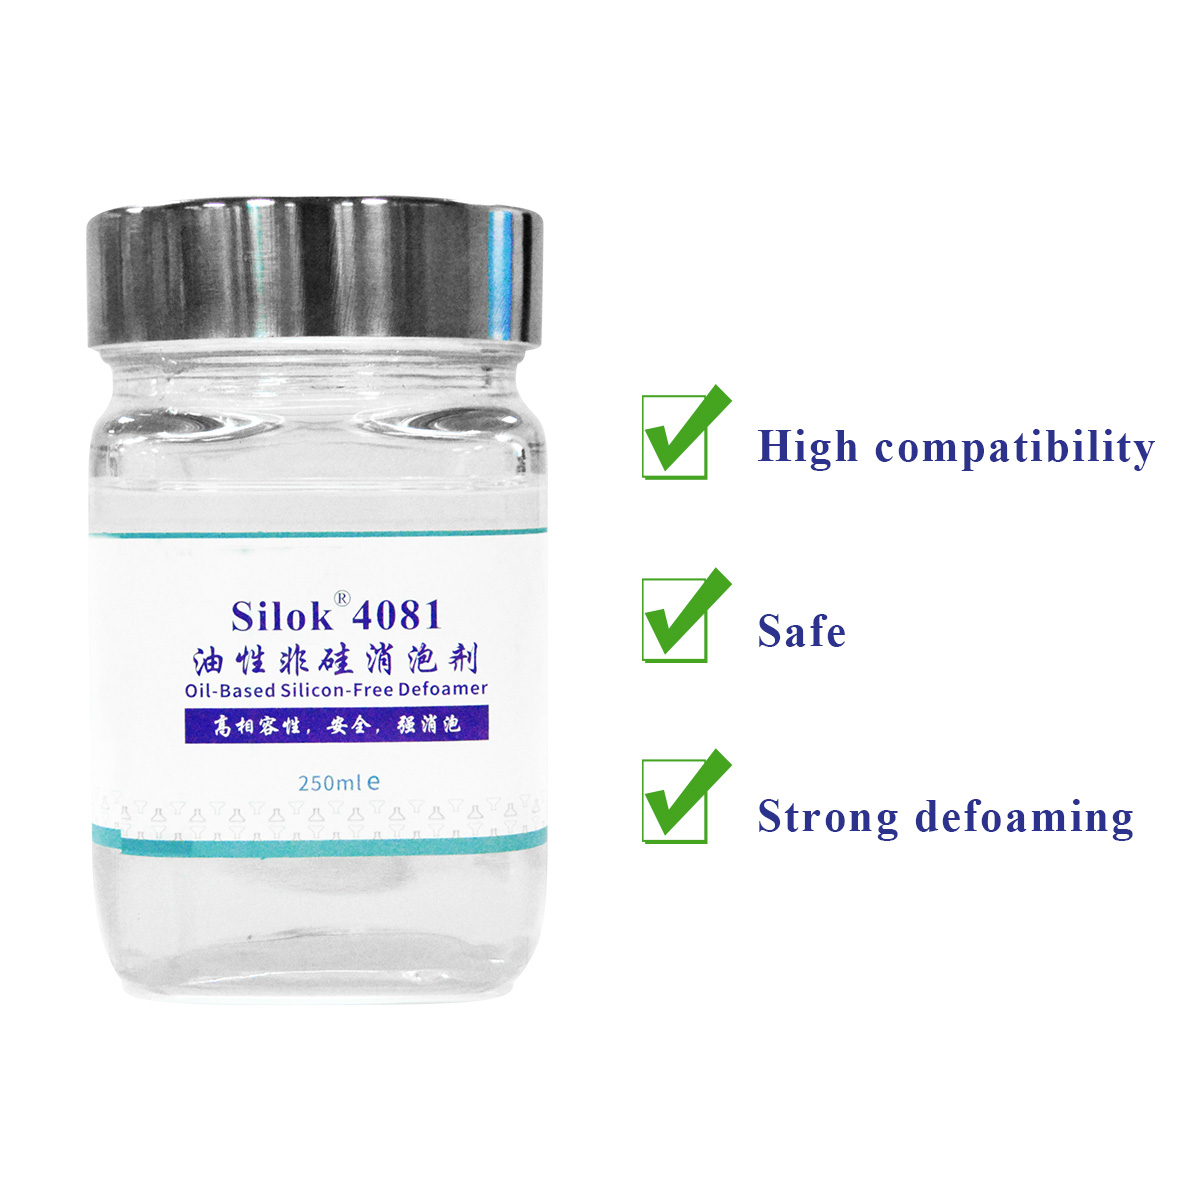 Oil-Based Silicon-Free Defoamer